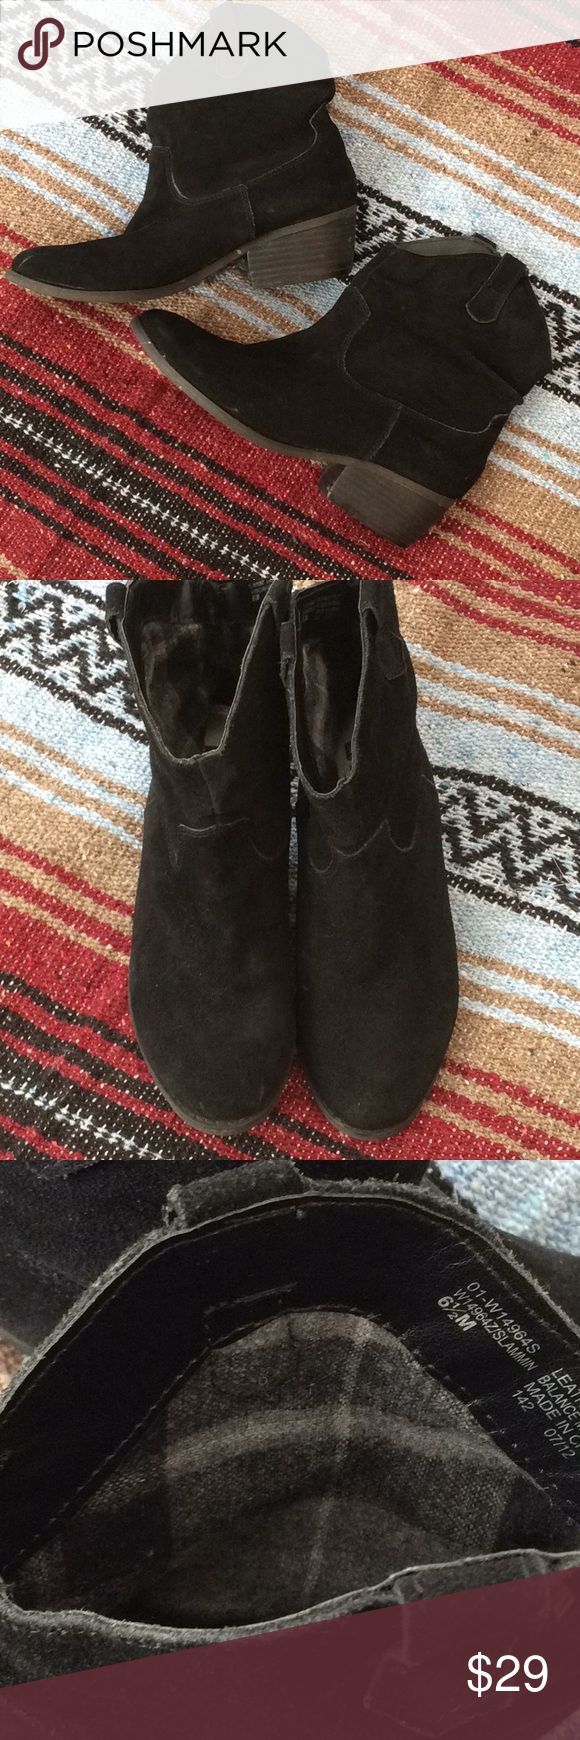 WM black suede leather booties Cute cowboy 🤠 booties that can be with any outfit to go in all seasons! Style: Slammin, awesome condition and a long, long life ahead! White Mountain Shoes Ankle Boots & Booties